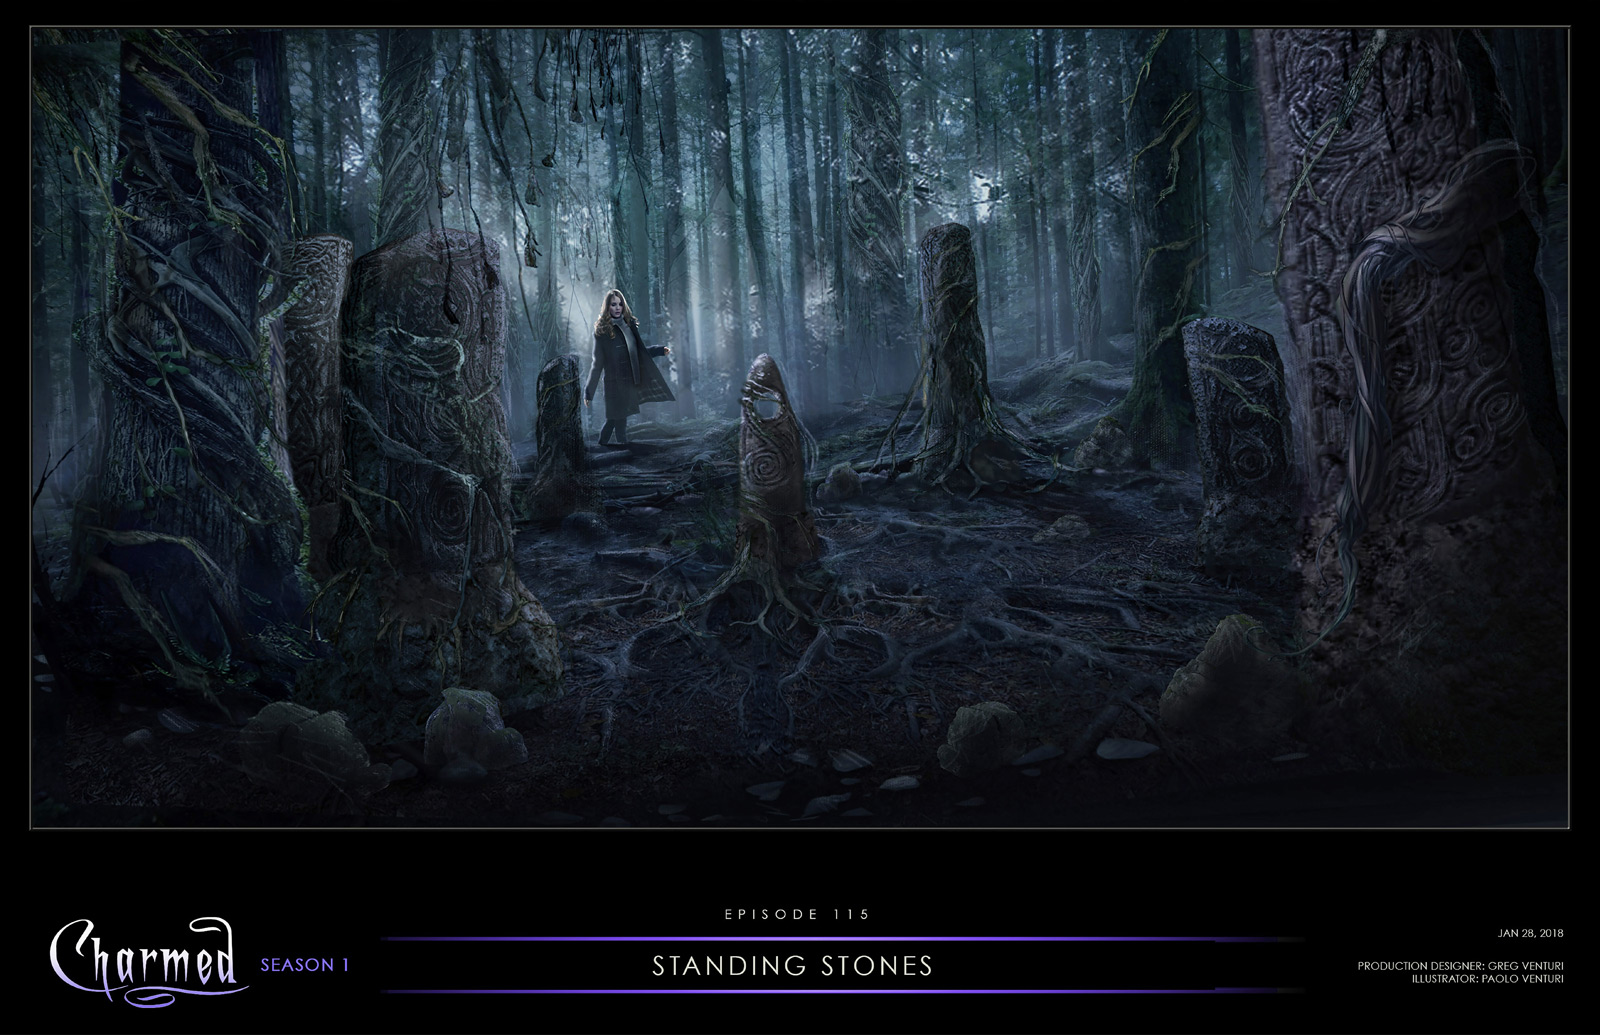 CHARMED: S1 - CELTIC STONE CLEARING - DRESSED LOCATION - CONCEPT ART